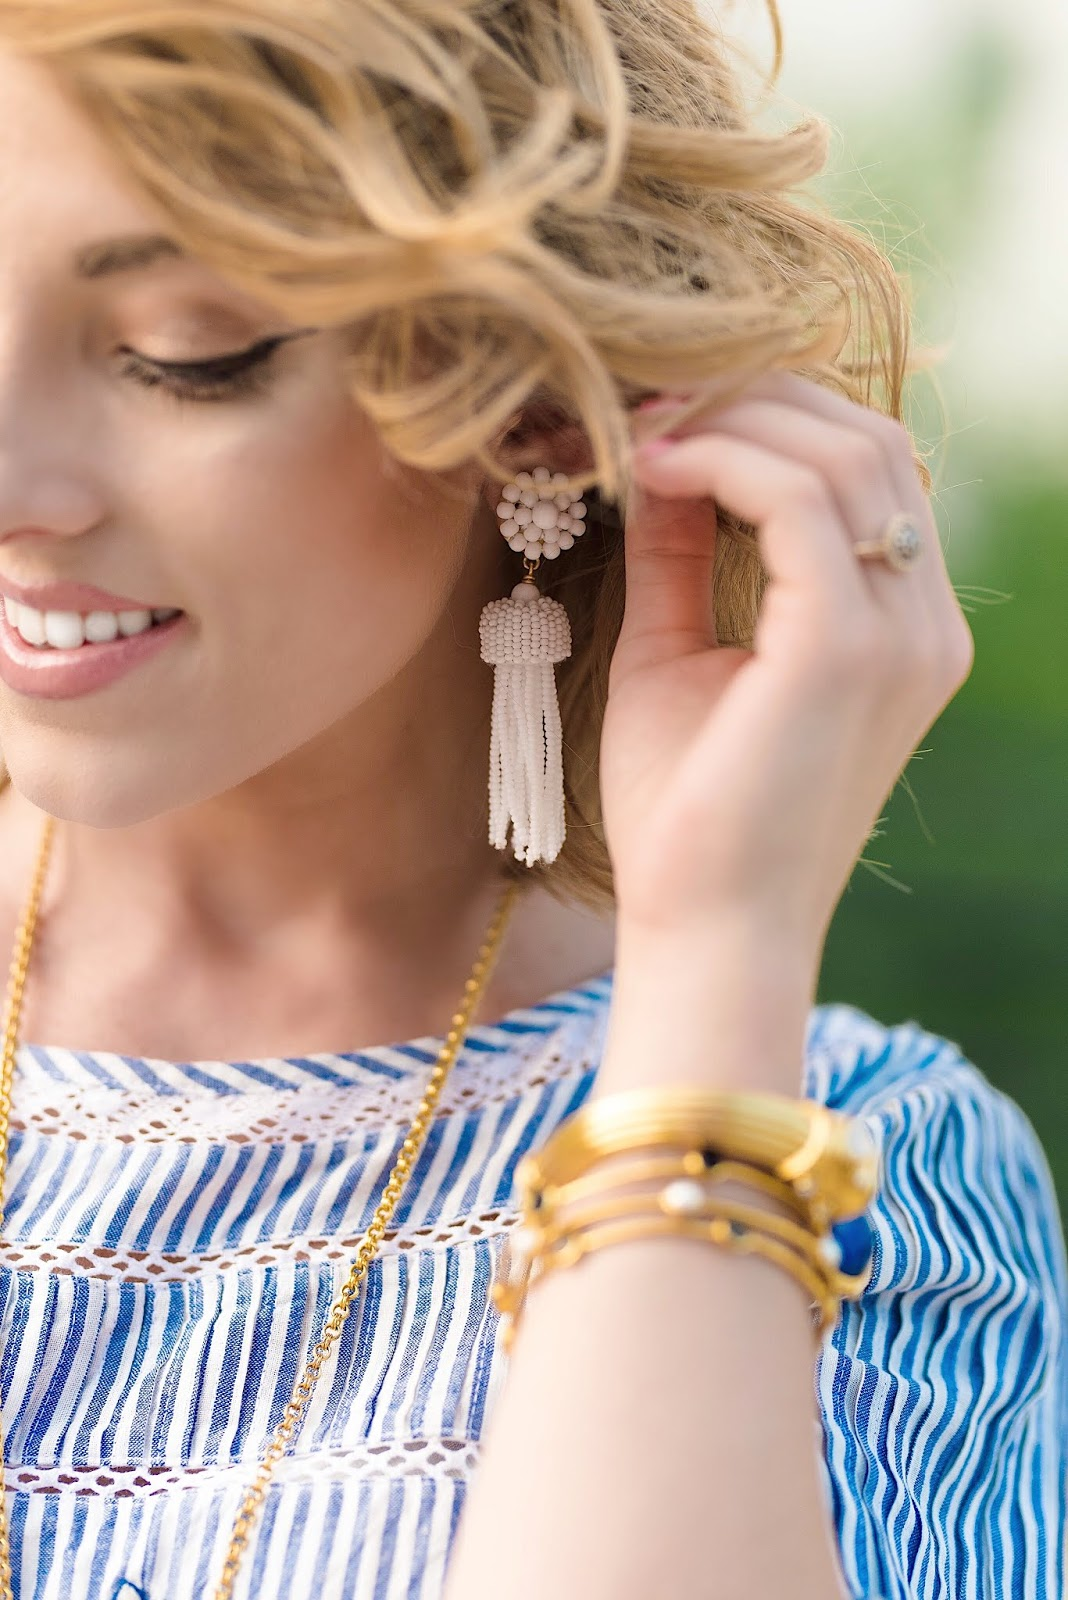 Lisi Lerch Tassel Earrings in White - Something Delightful Blog